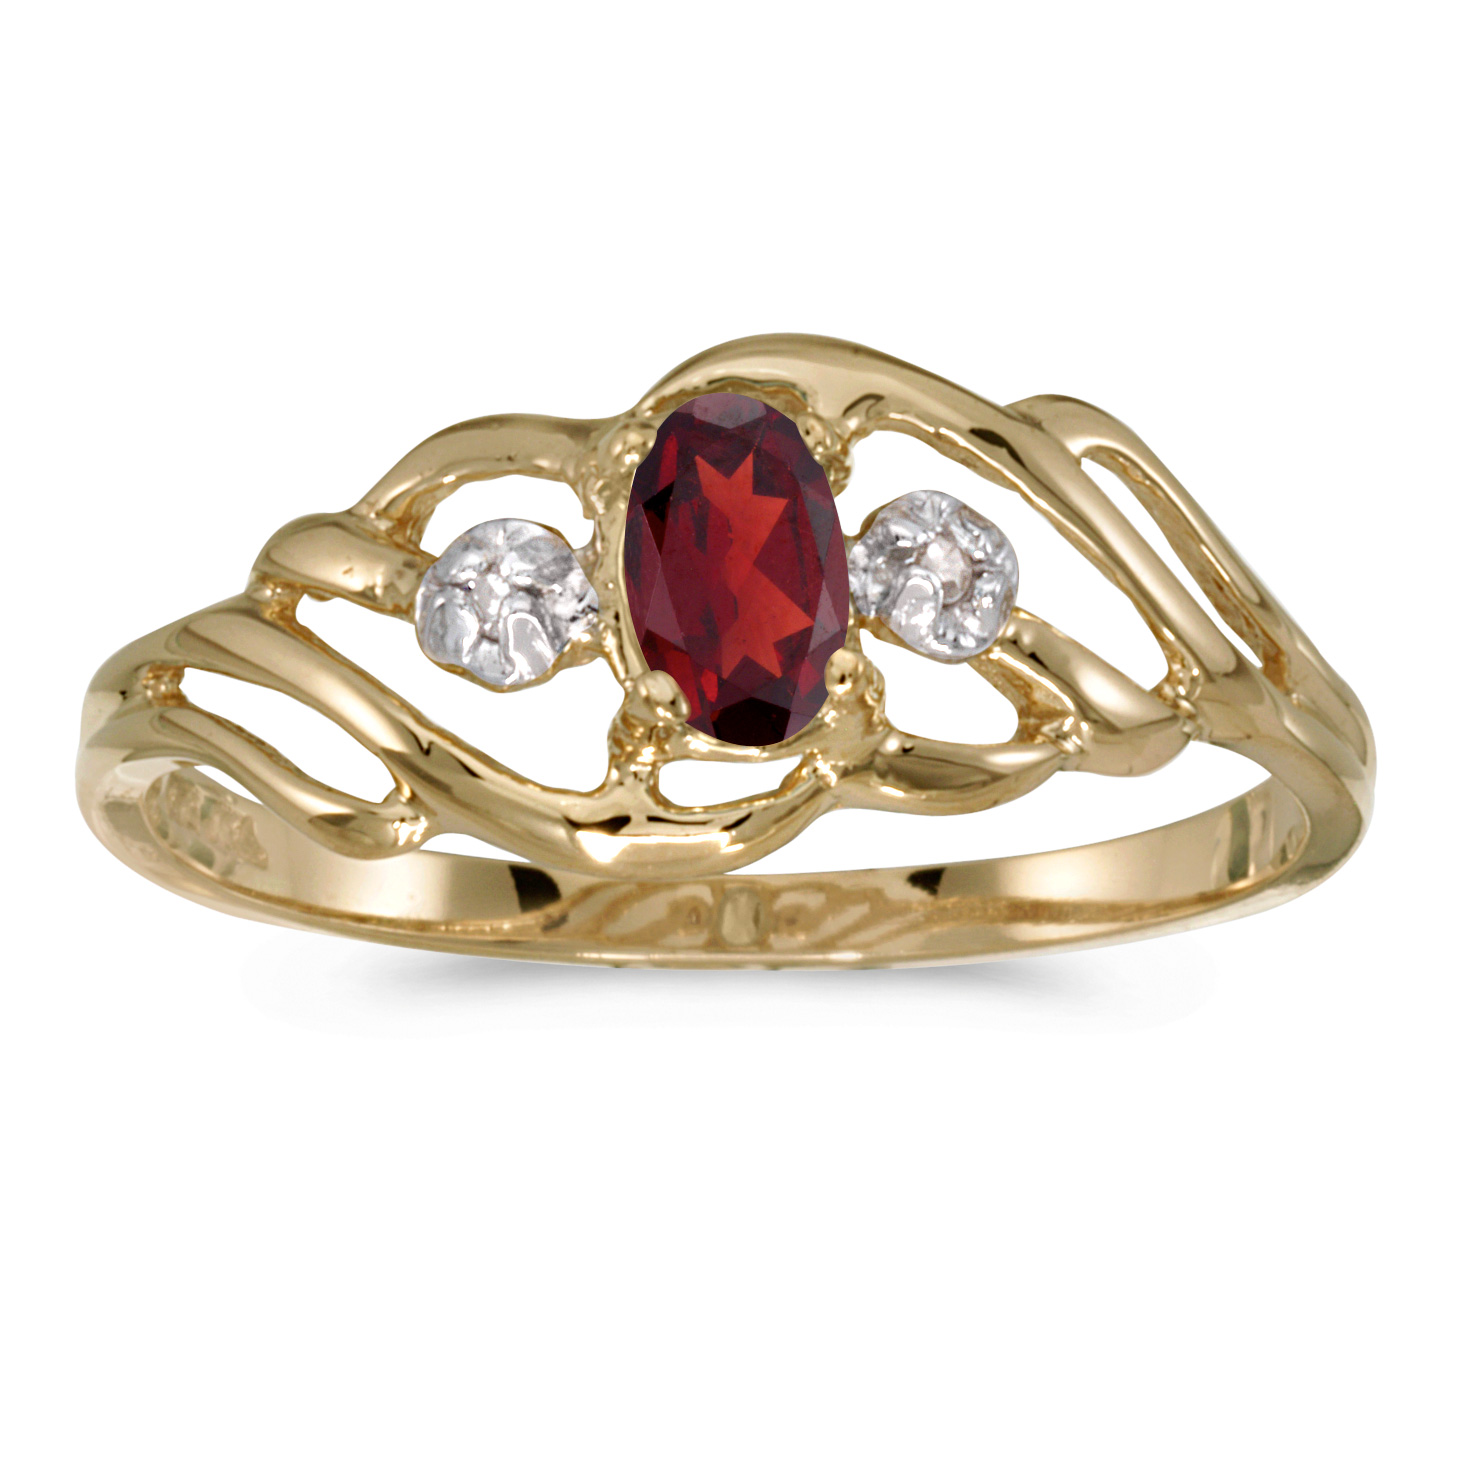 10k Yellow Gold Oval Garnet And Diamond Ring by